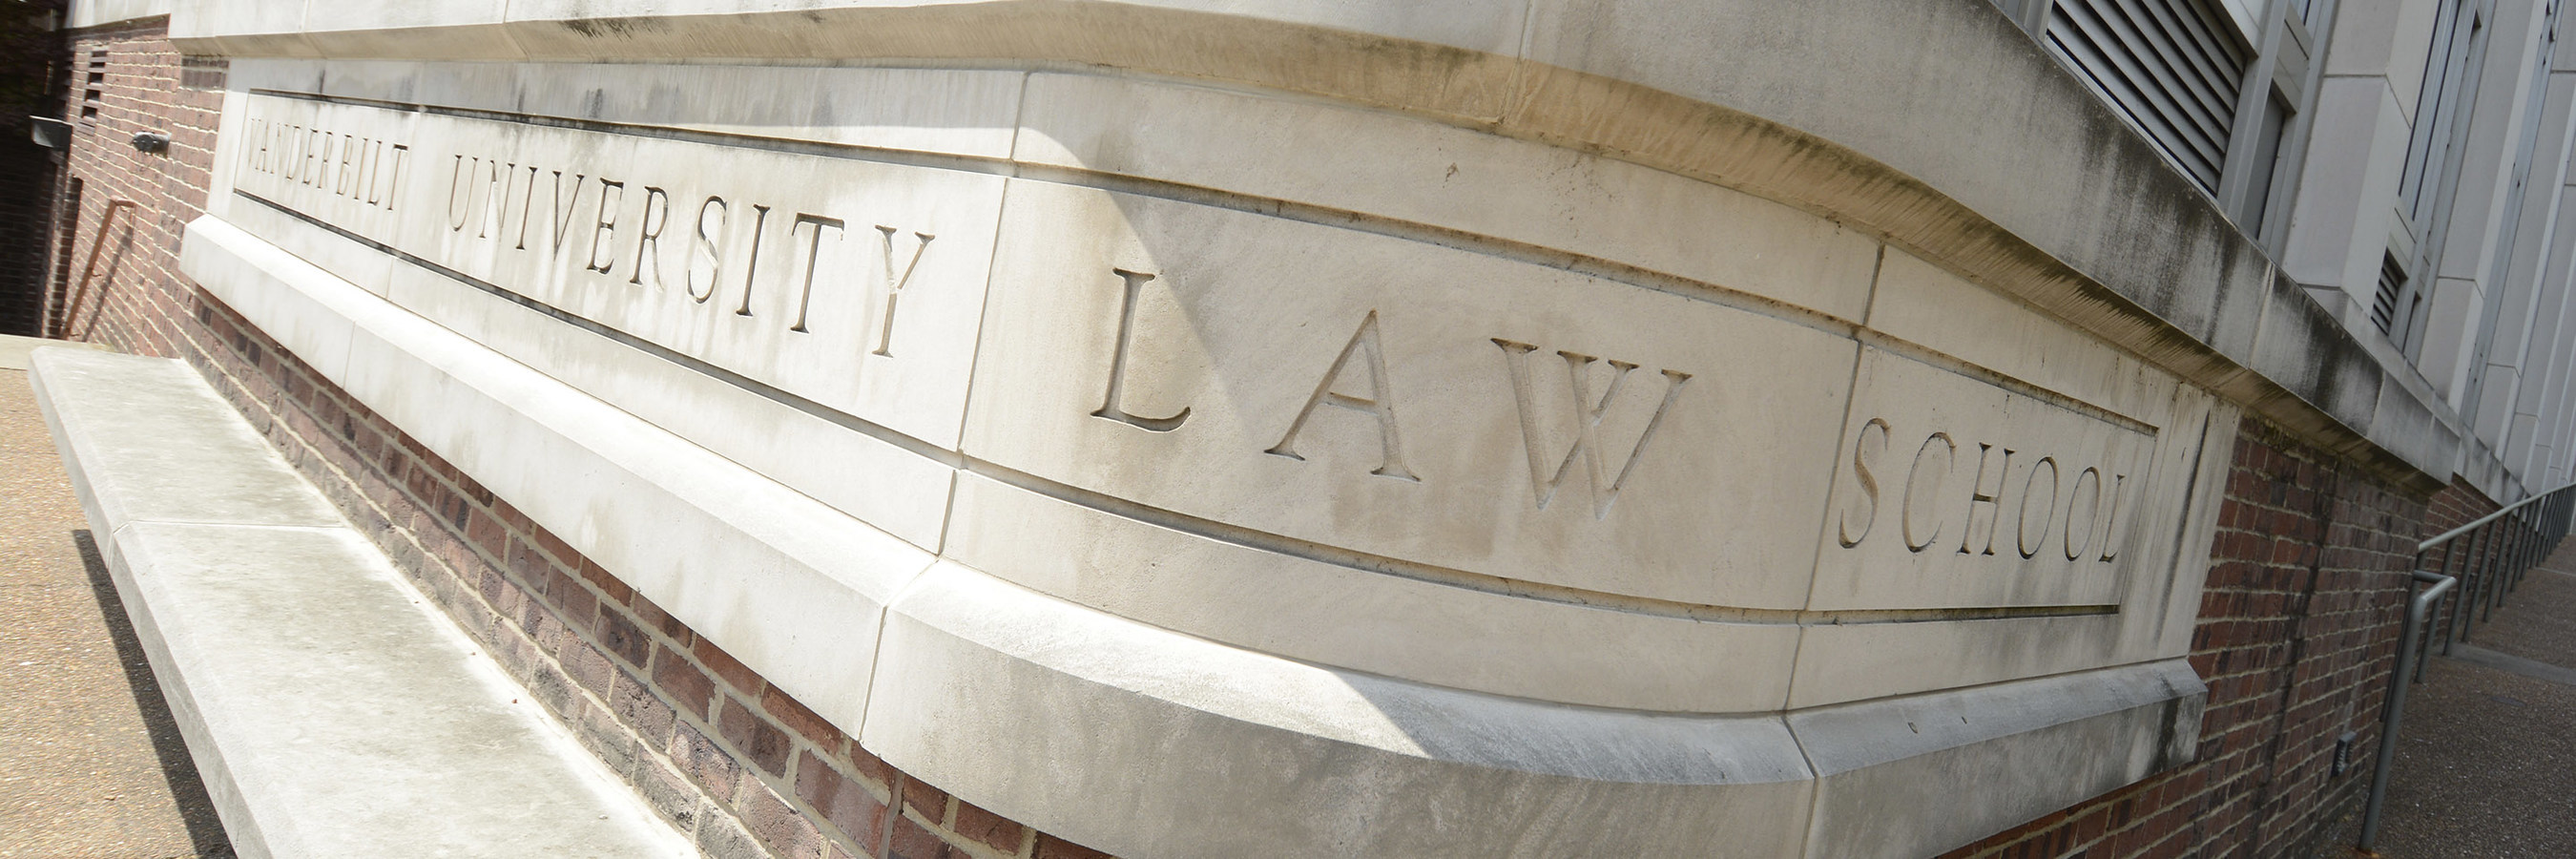 Vanderbilt Law School Launches Online Legal Education Program for